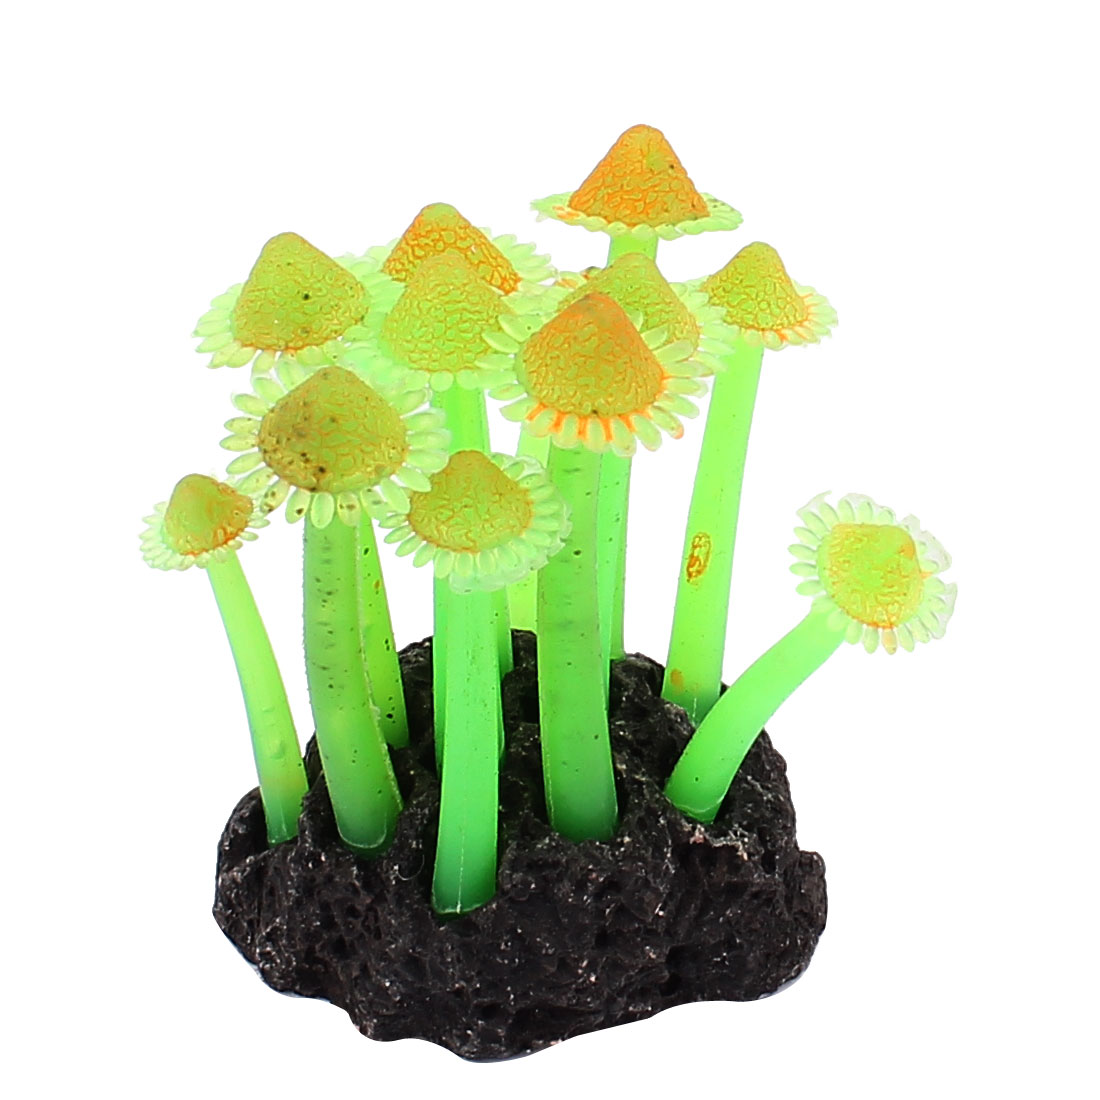 Aquarium Fish Tank Plastic Ornament Man-made Coral Emulation Plant 3 Inch Height Green